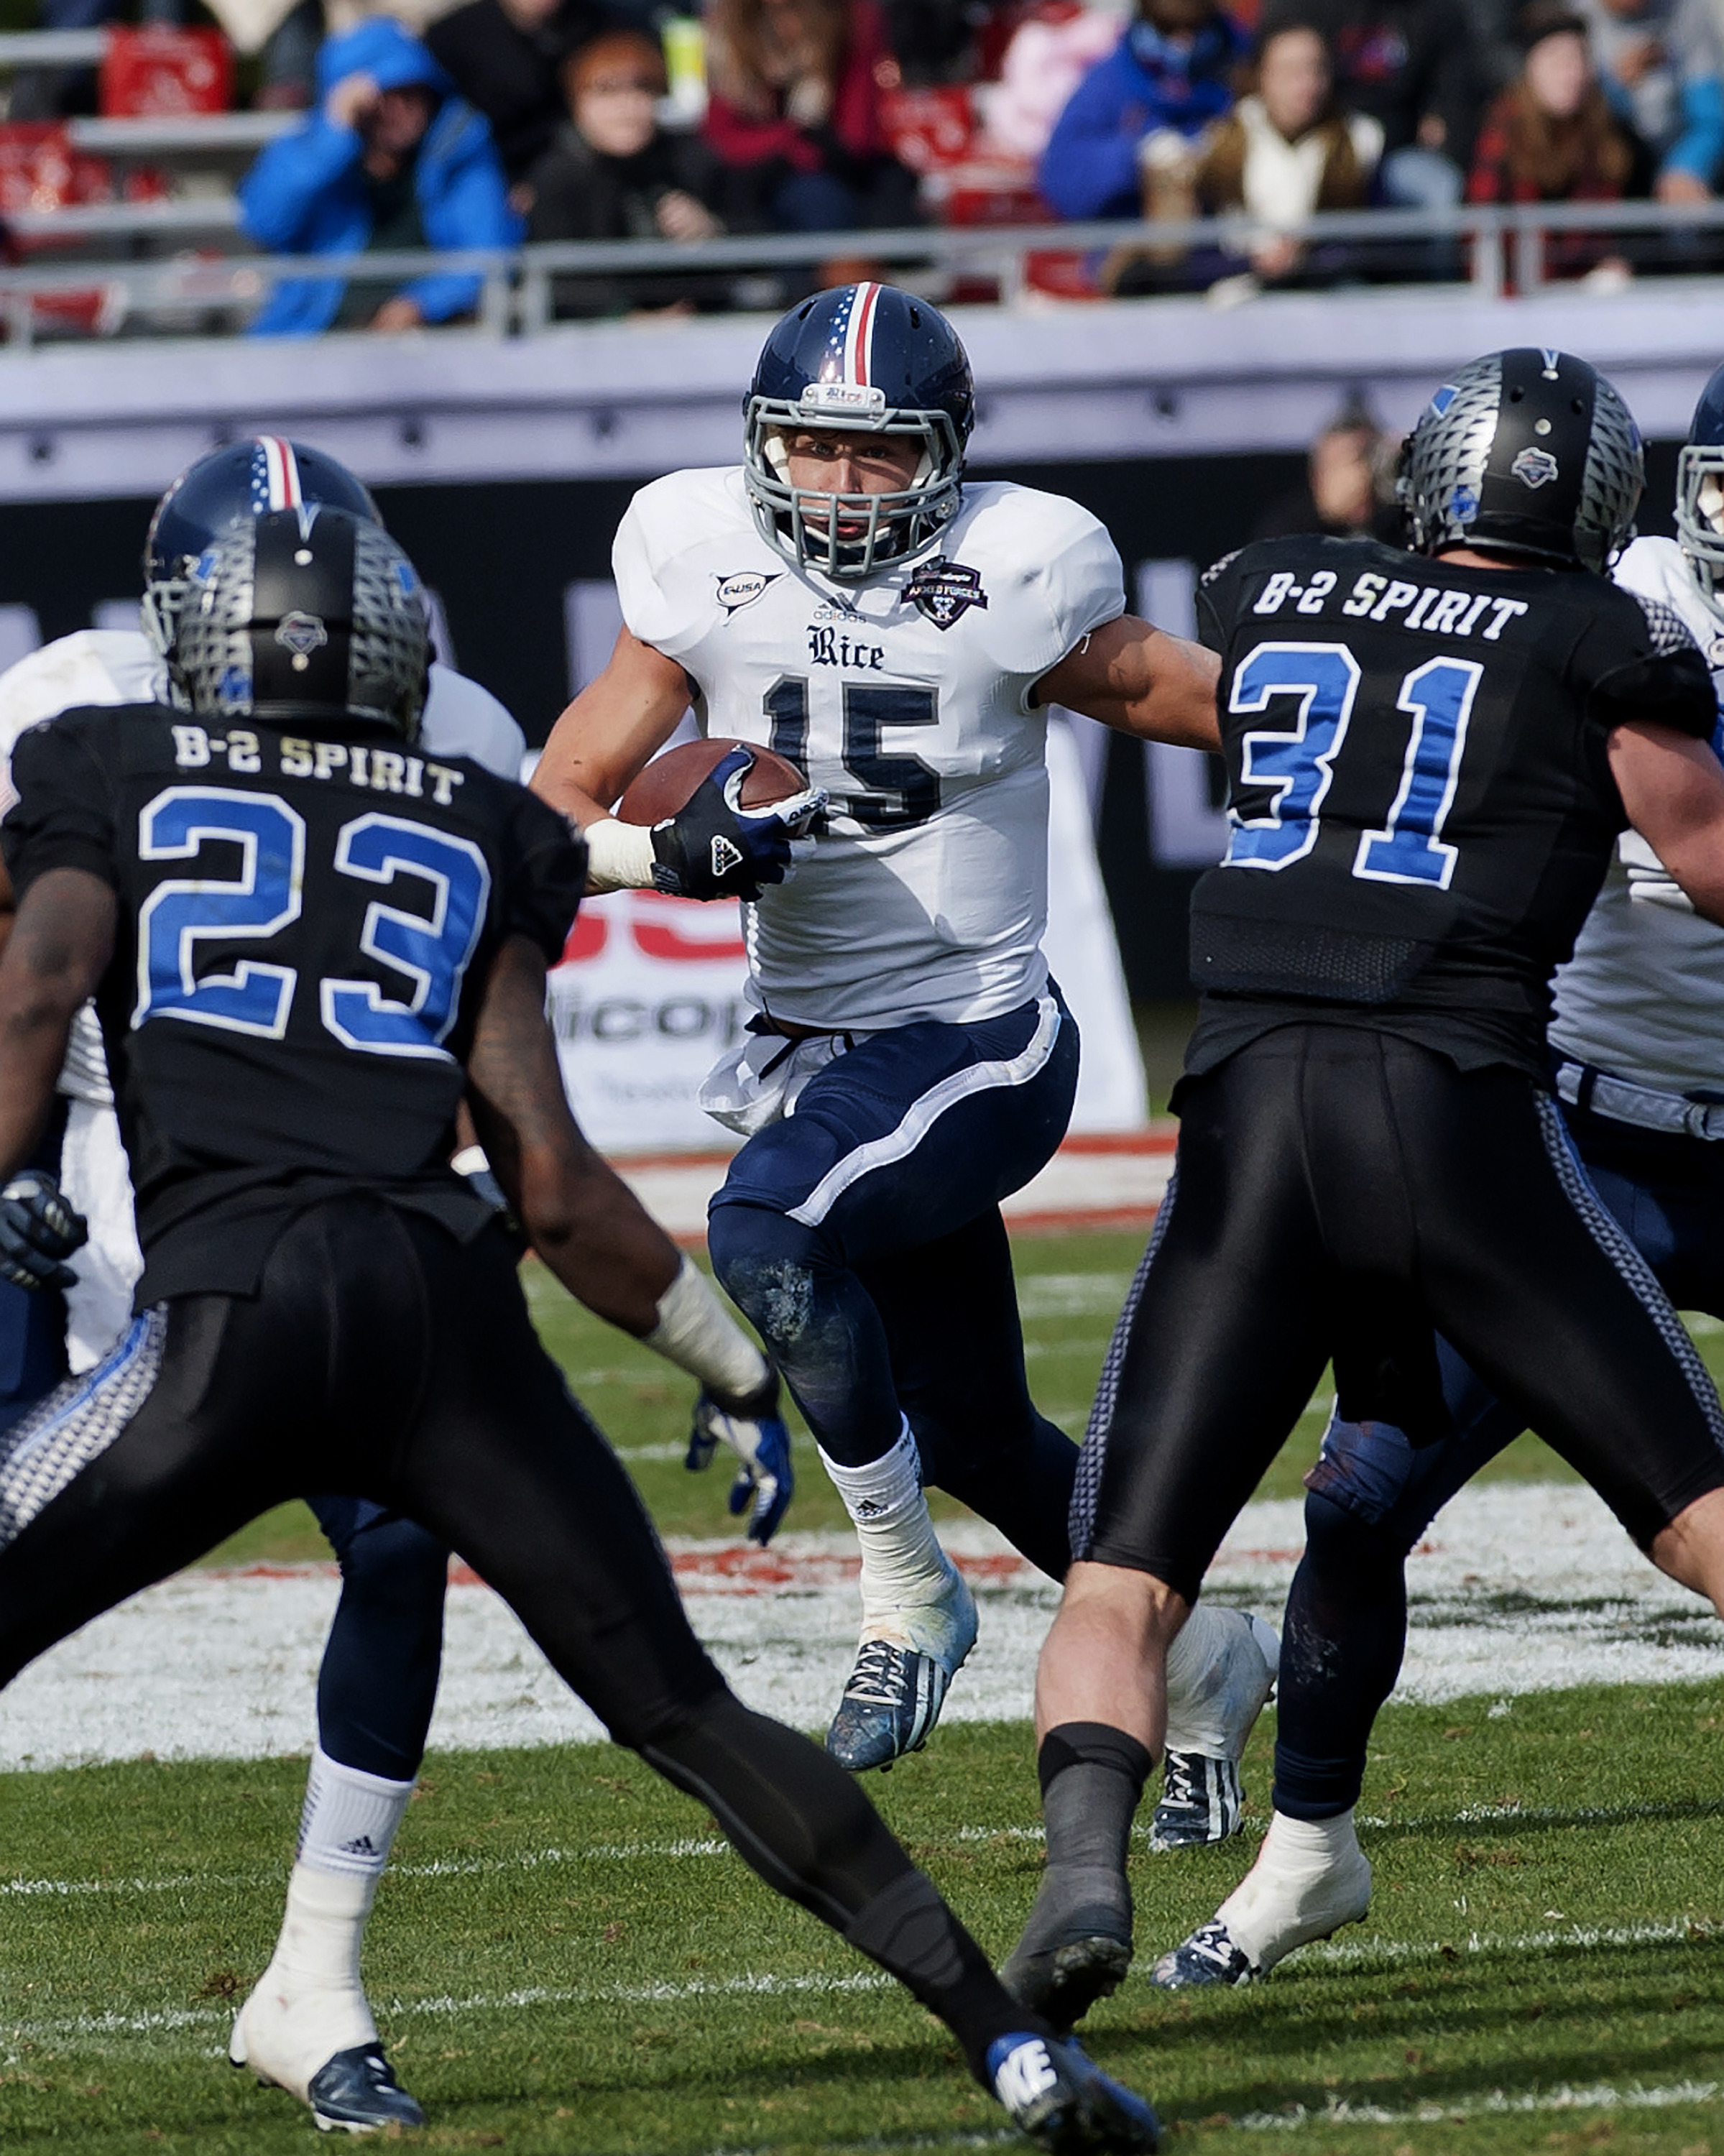 Taylor Named to Armed Forces Bowl Anniversary Team - Rice University ... d3e4ecca4